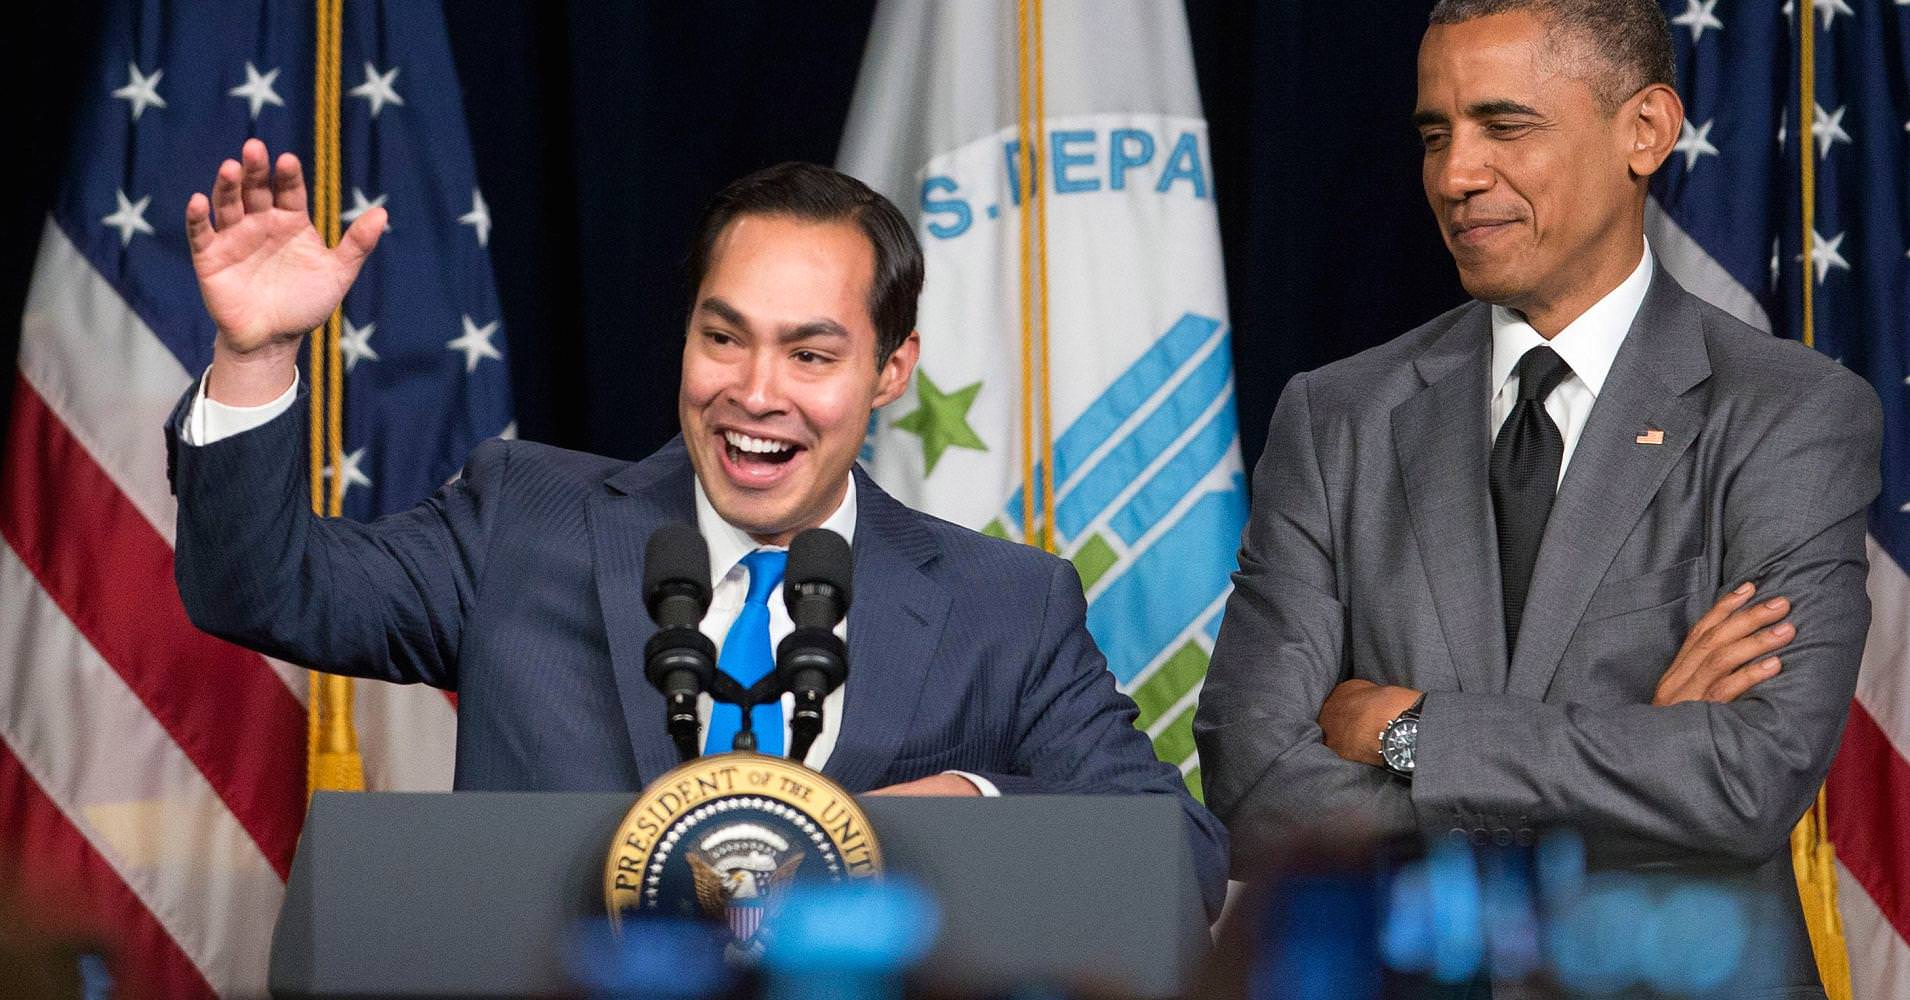 HUD Audit Finds Unheard of $500 Billion in Accounting Errors – So Bad General Counsel Refused to Sign Report!